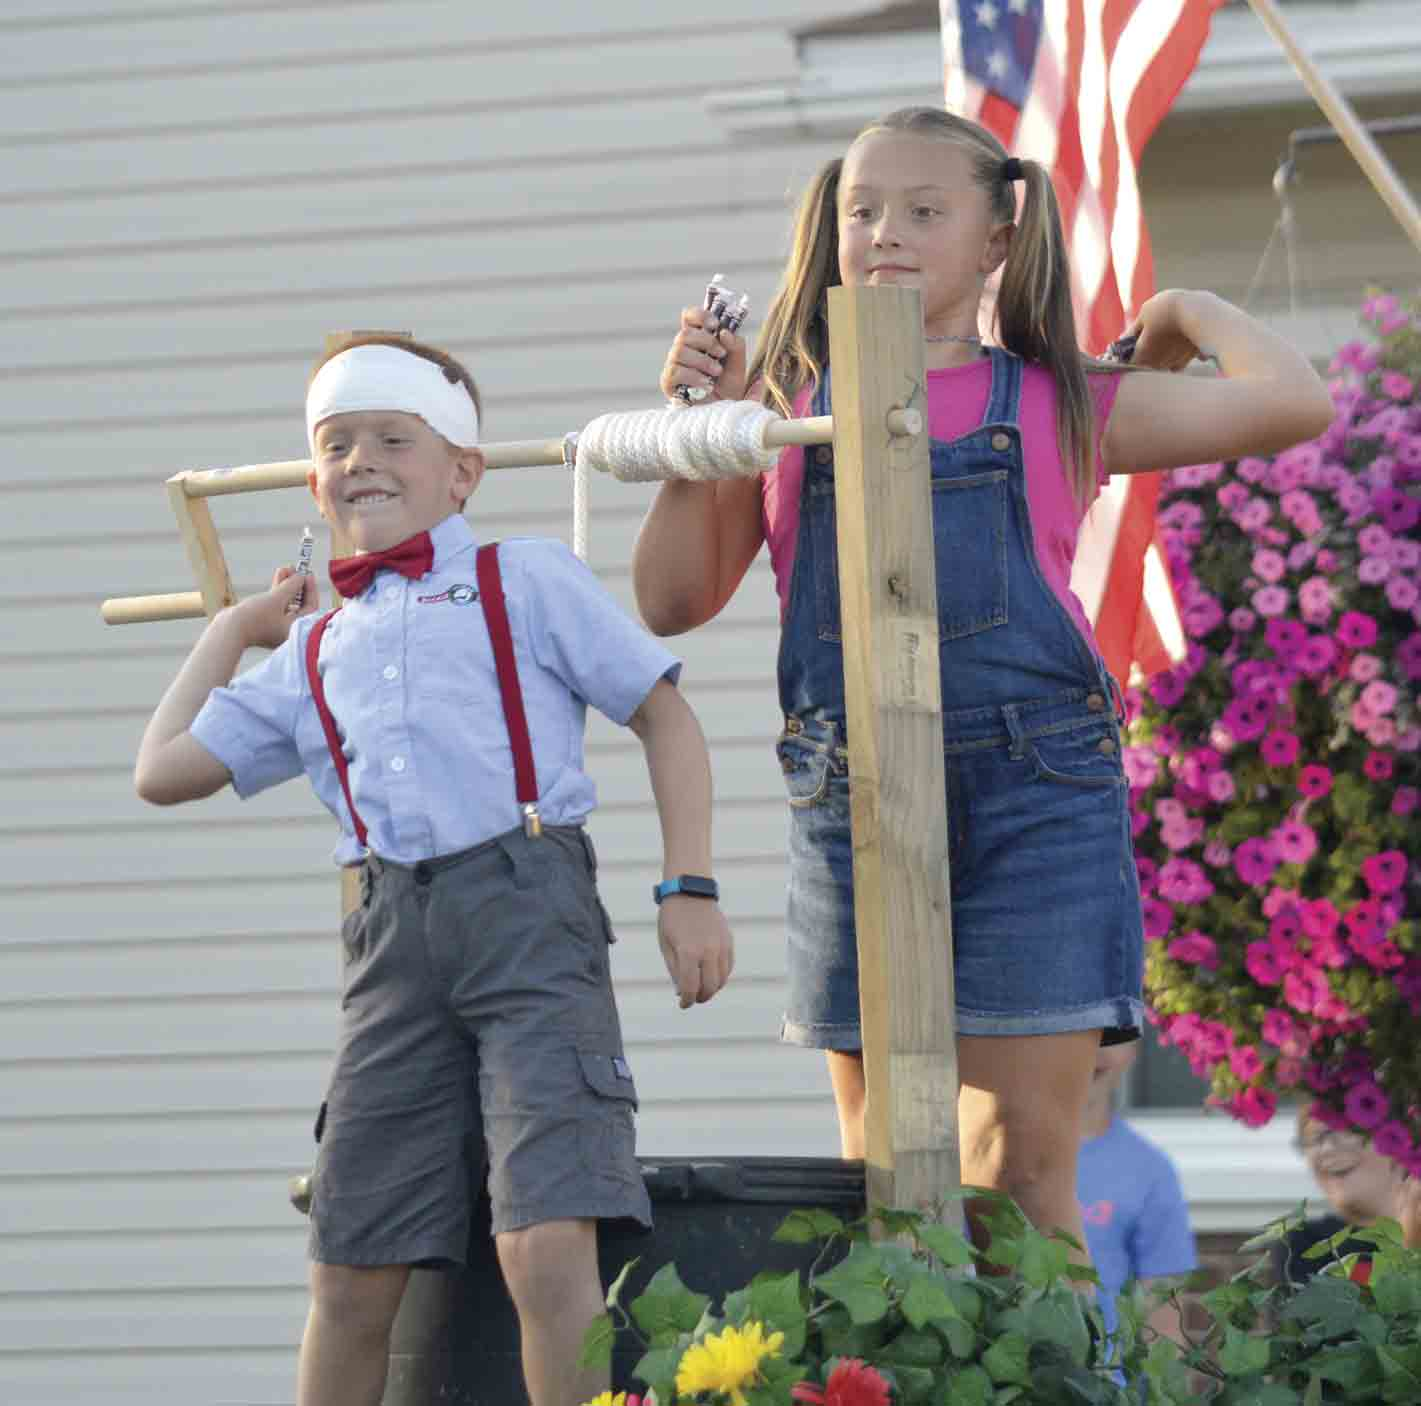 """Jack and Jill toss out some candy to parade goers at the 2019 Ossian Fest Grand Parade, which had the theme of """"It's Rhyme Time in Ossian."""" This year's Grand Parade will be held Saturday night, Aug. 7, with the theme of """"Golden Books Come to Ossian Fest."""" (Zakary..."""